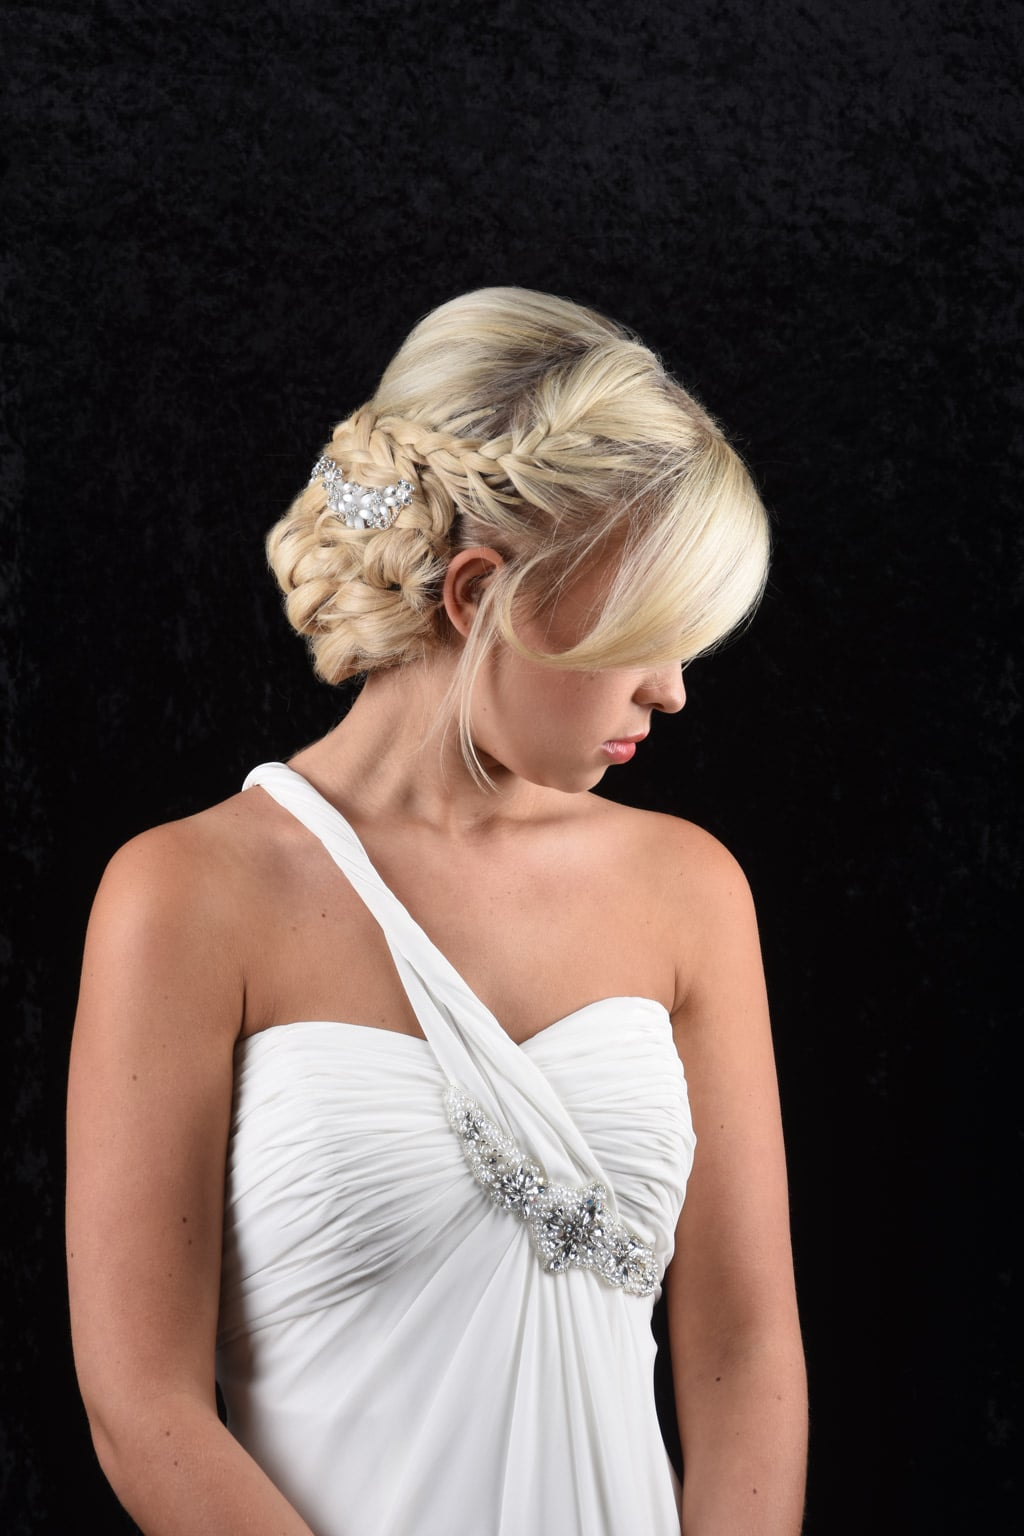 Elegance Collection - Hair Up